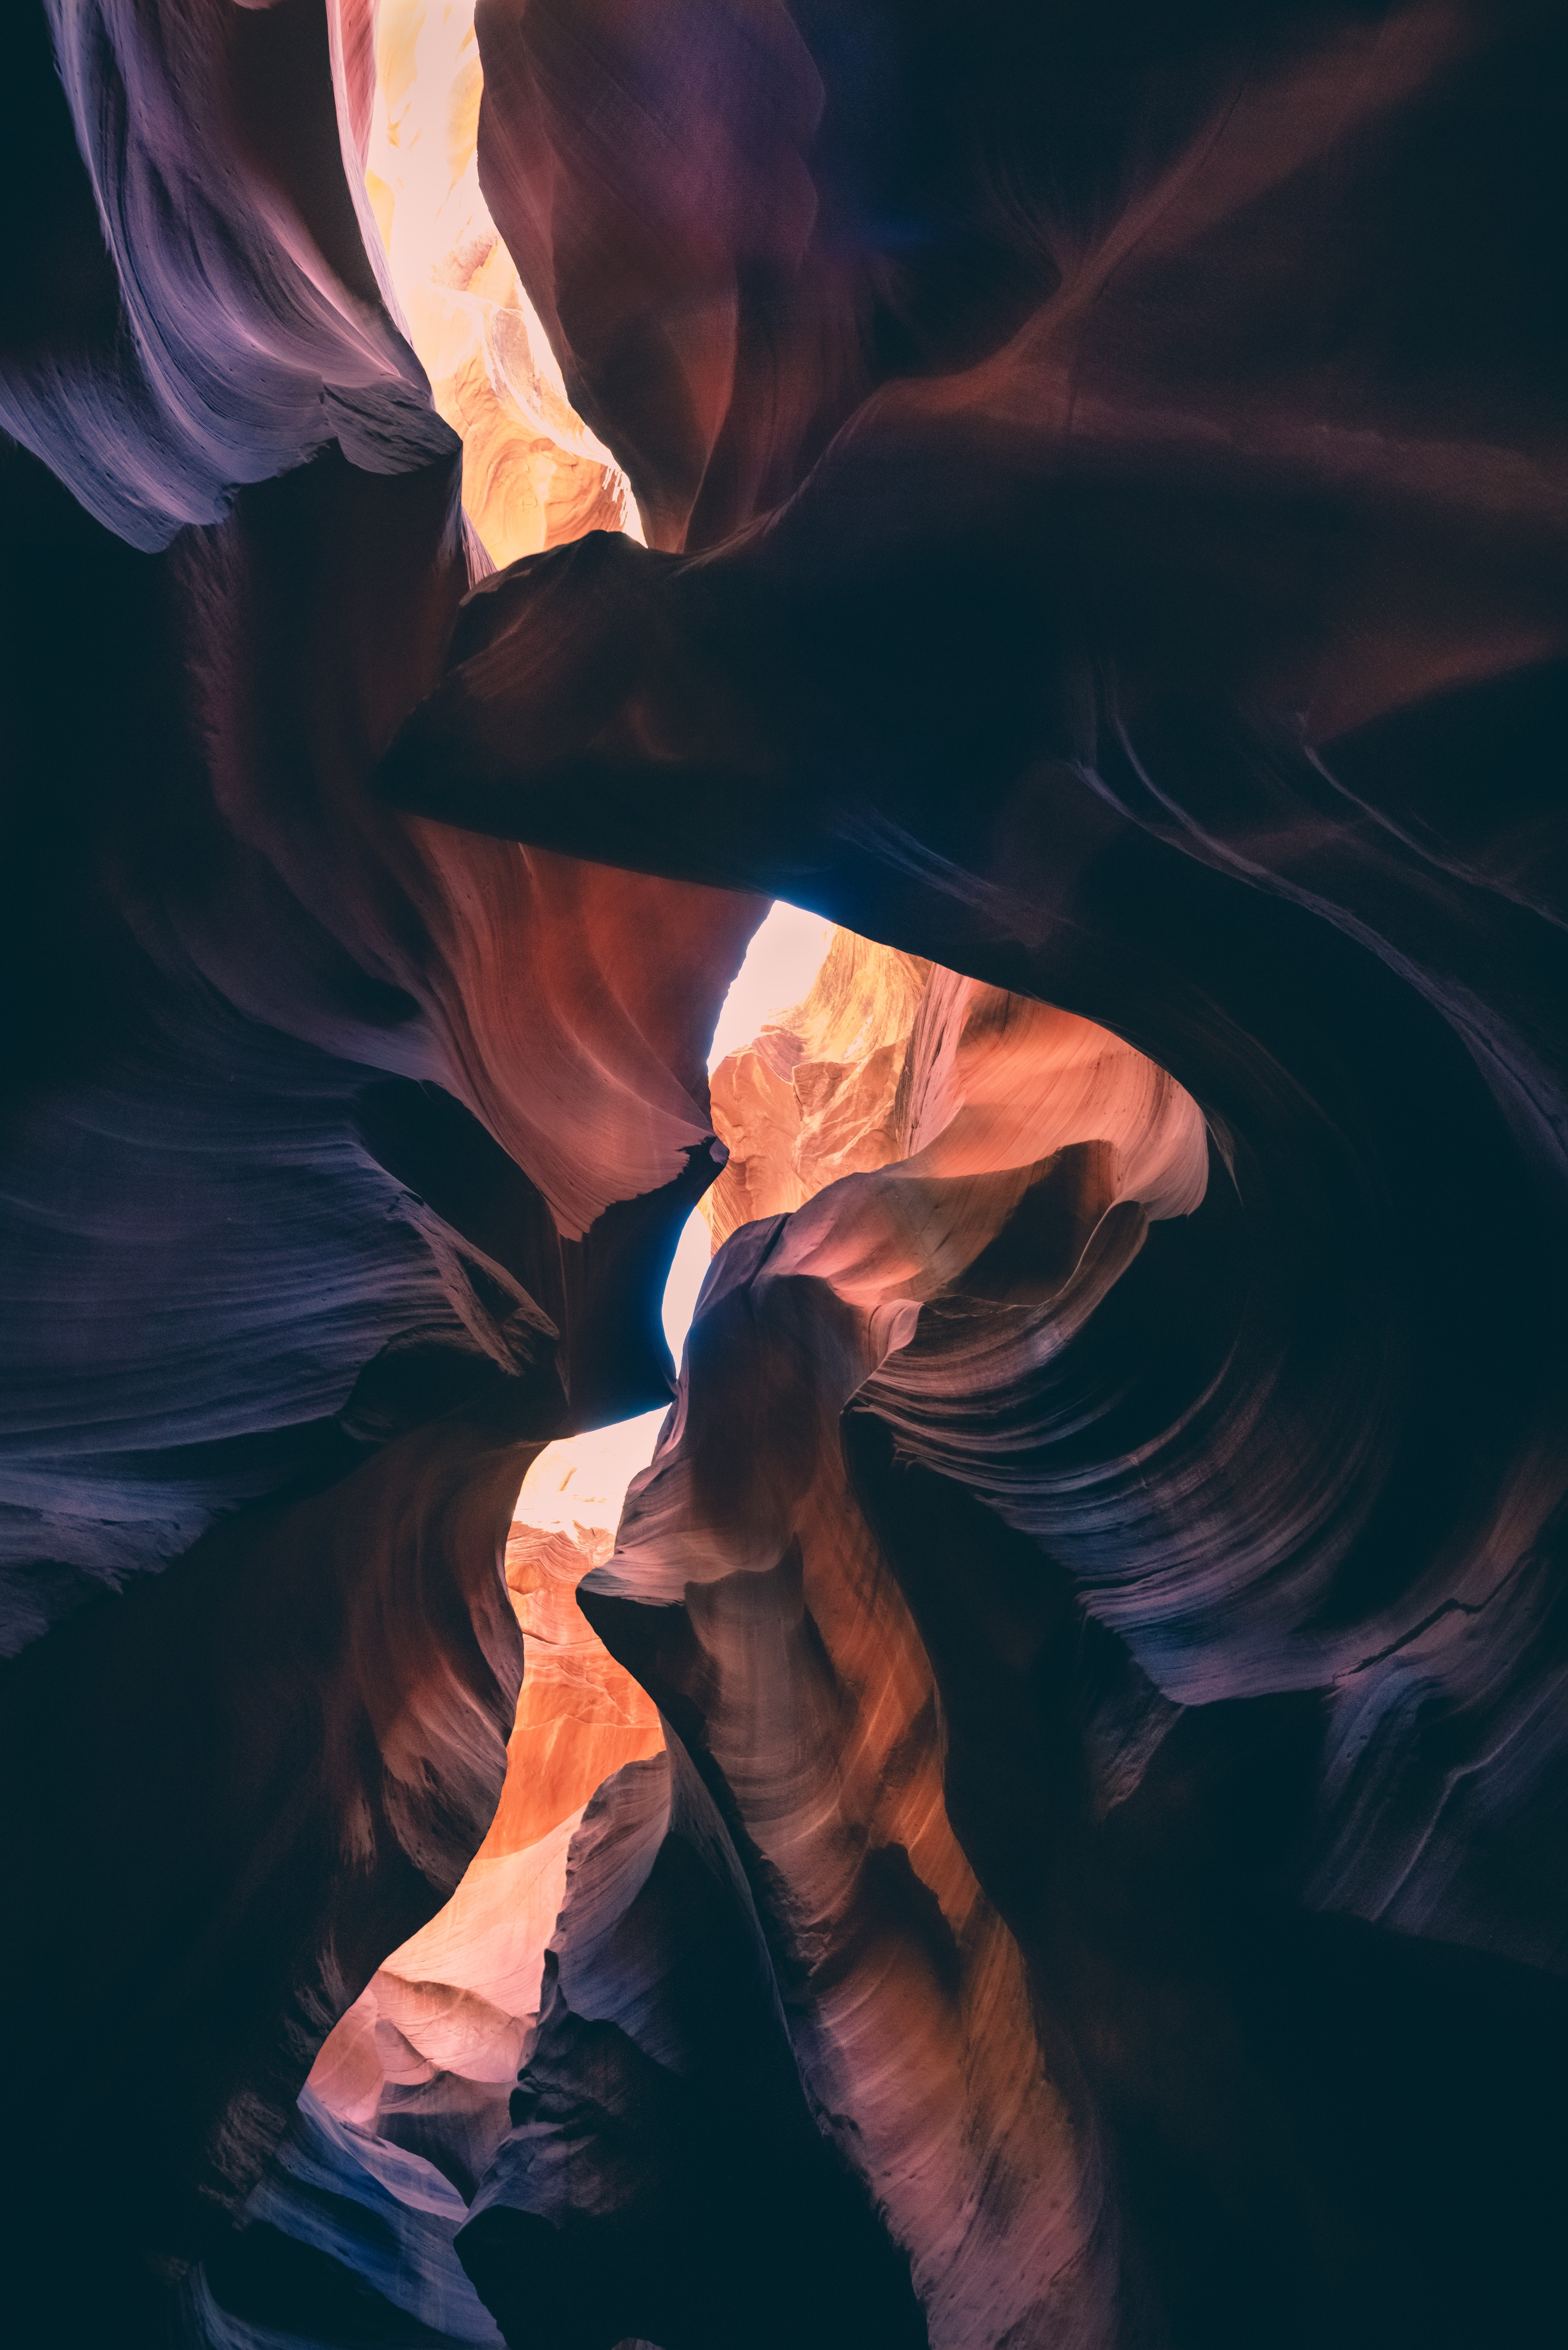 115327 download wallpaper Nature, Canyon, Layers, Shadows, Dark screensavers and pictures for free